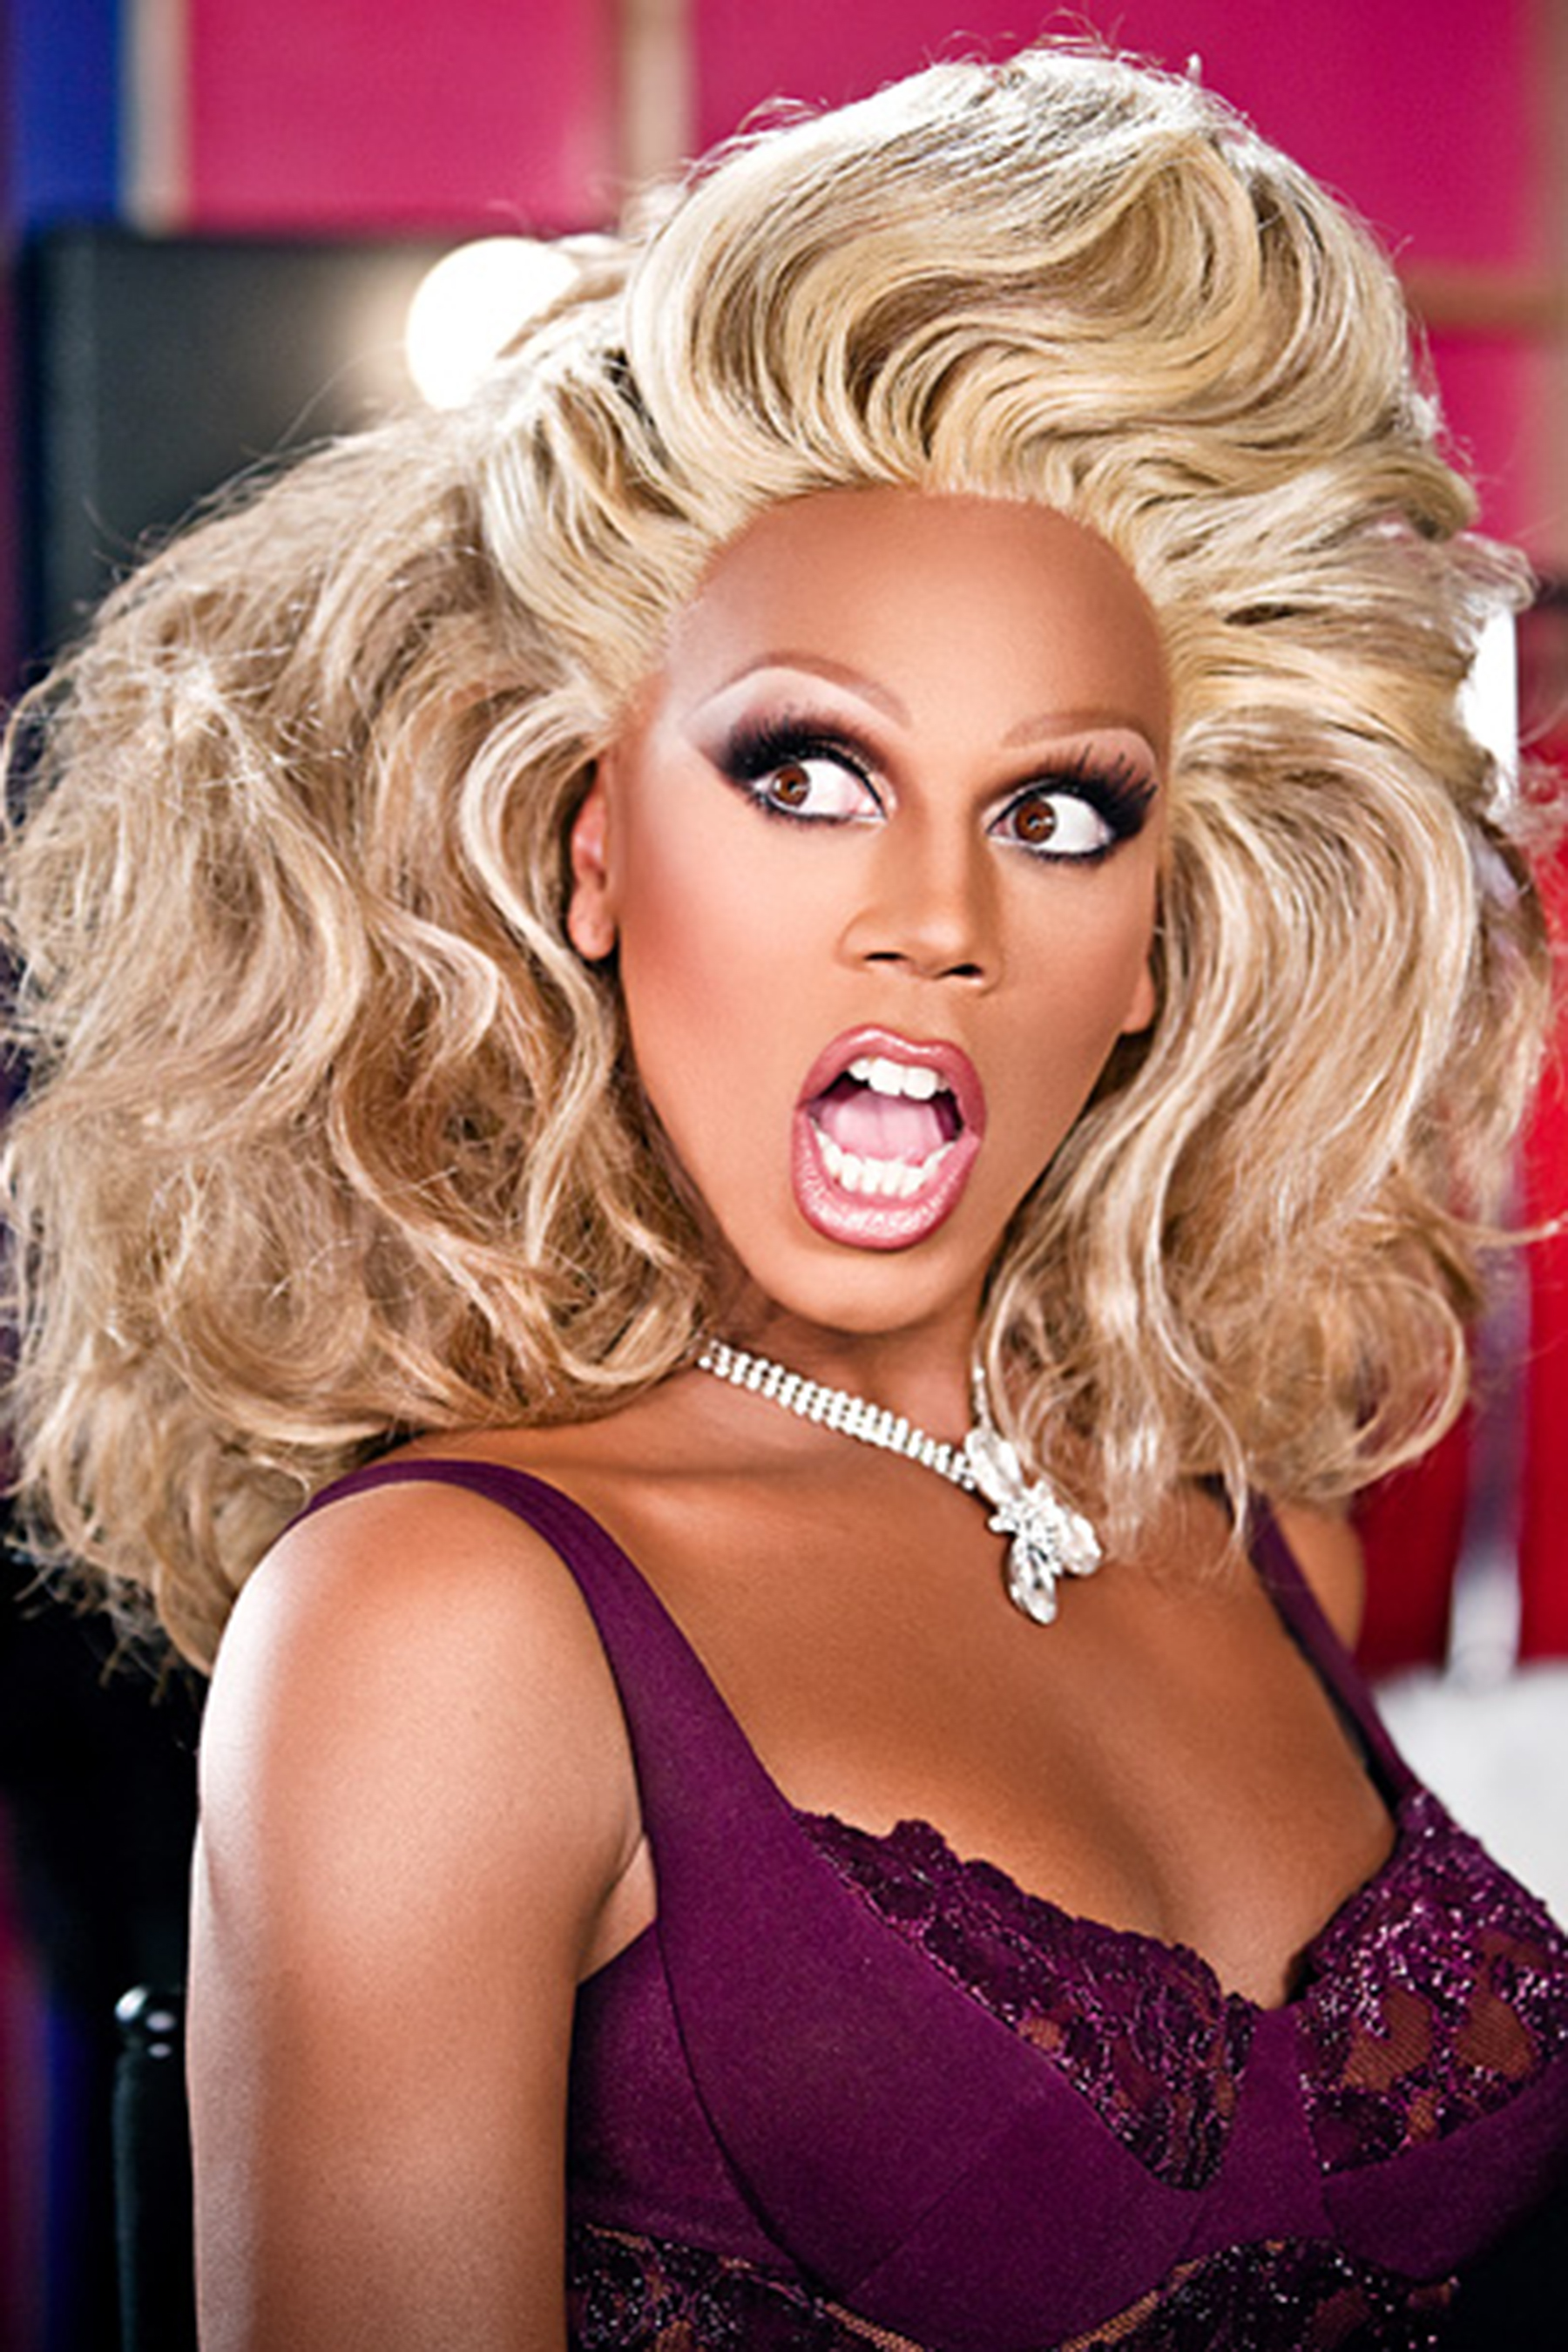 RUPAUL 2009 on set of RuPaul's Drag Race (on Logo)